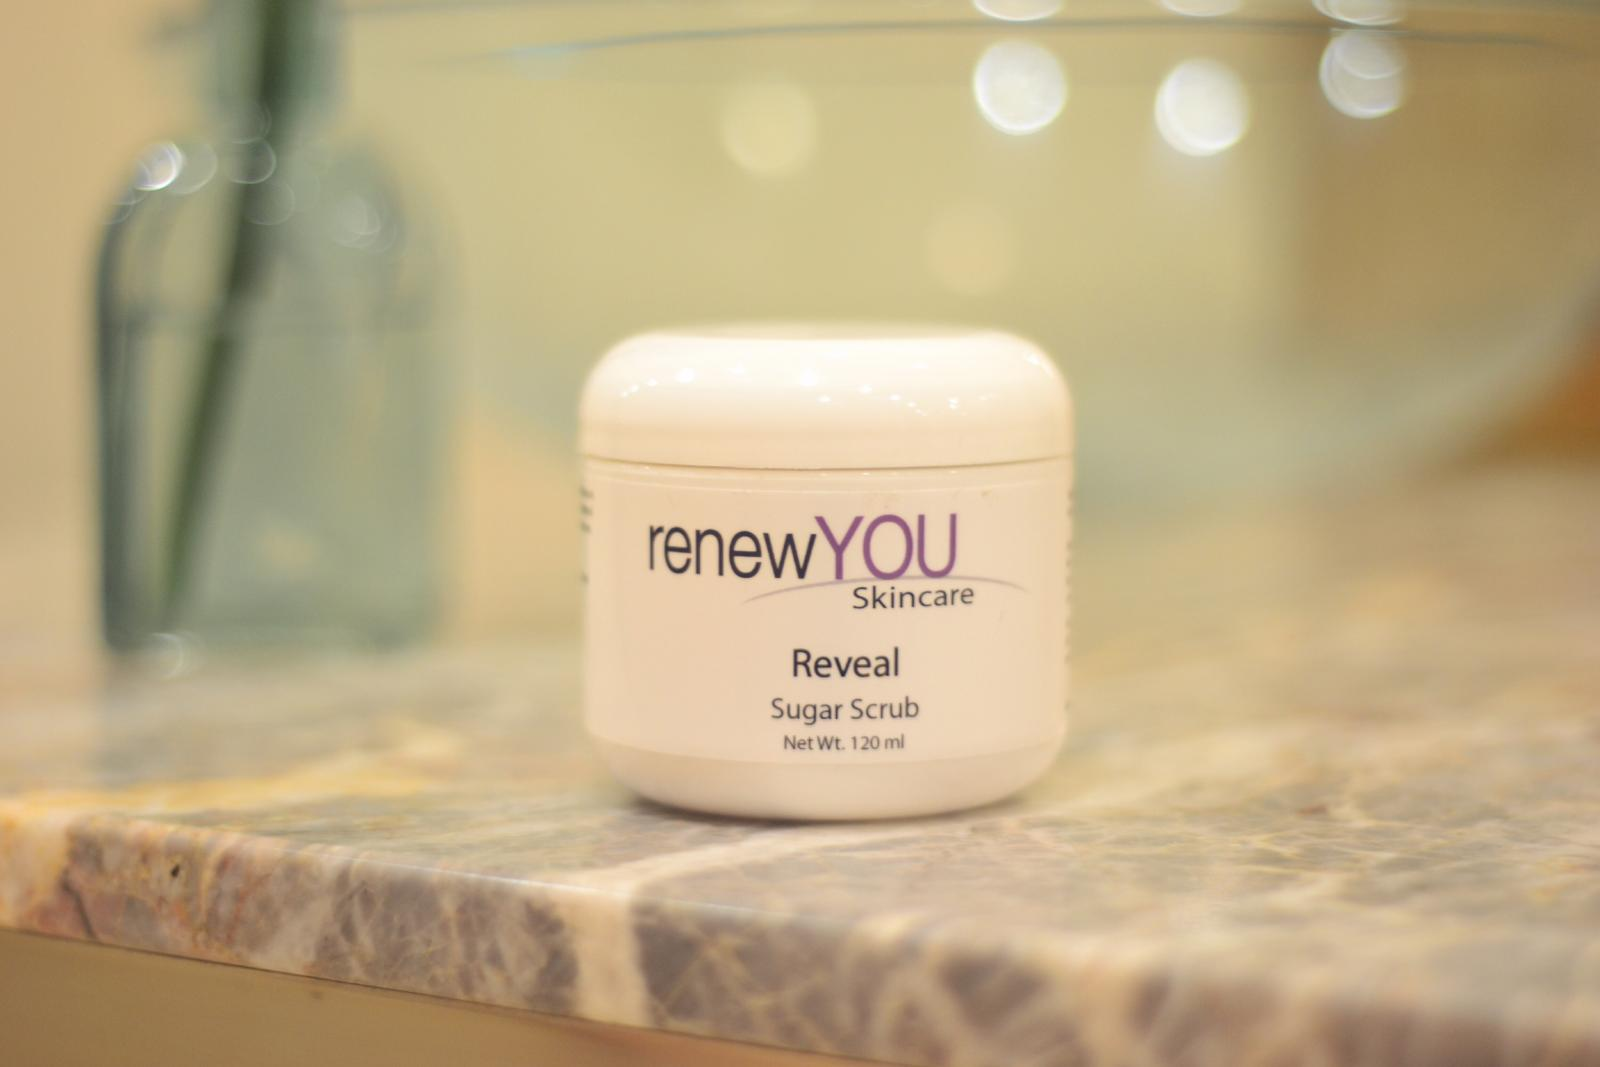 renewyou-reveal-sugar-scrub